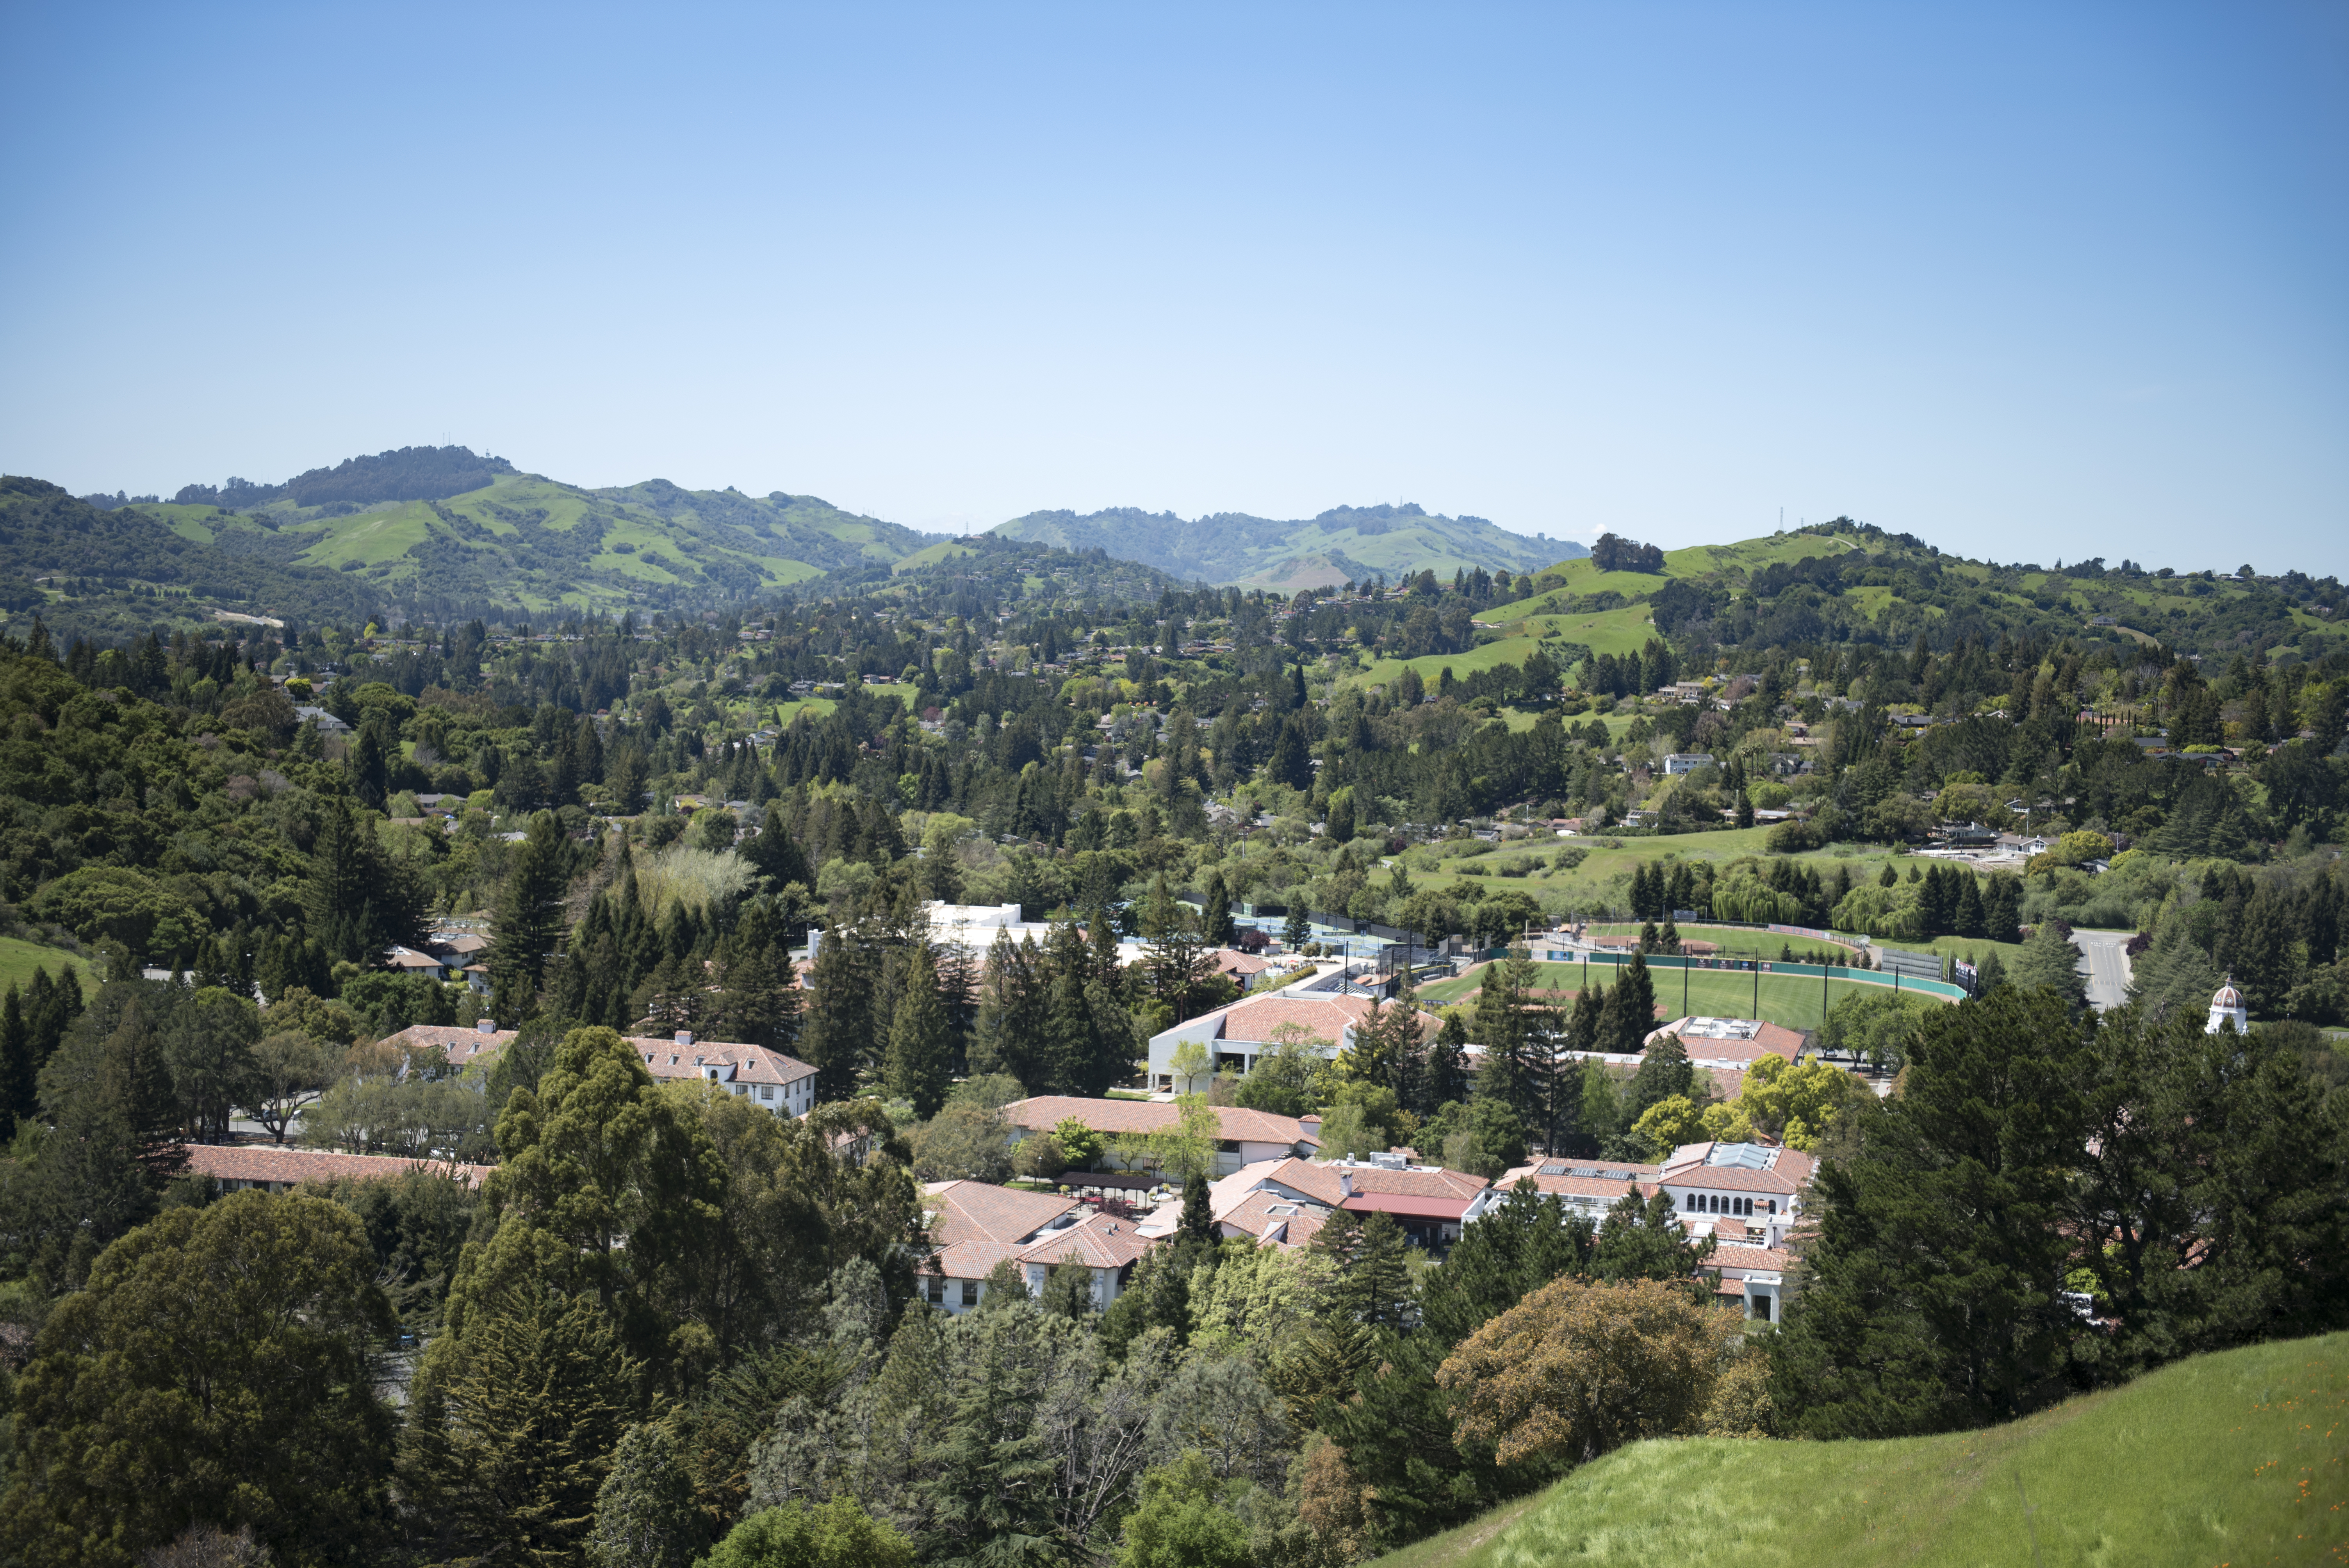 green hills, trees surrounding saint marys campus